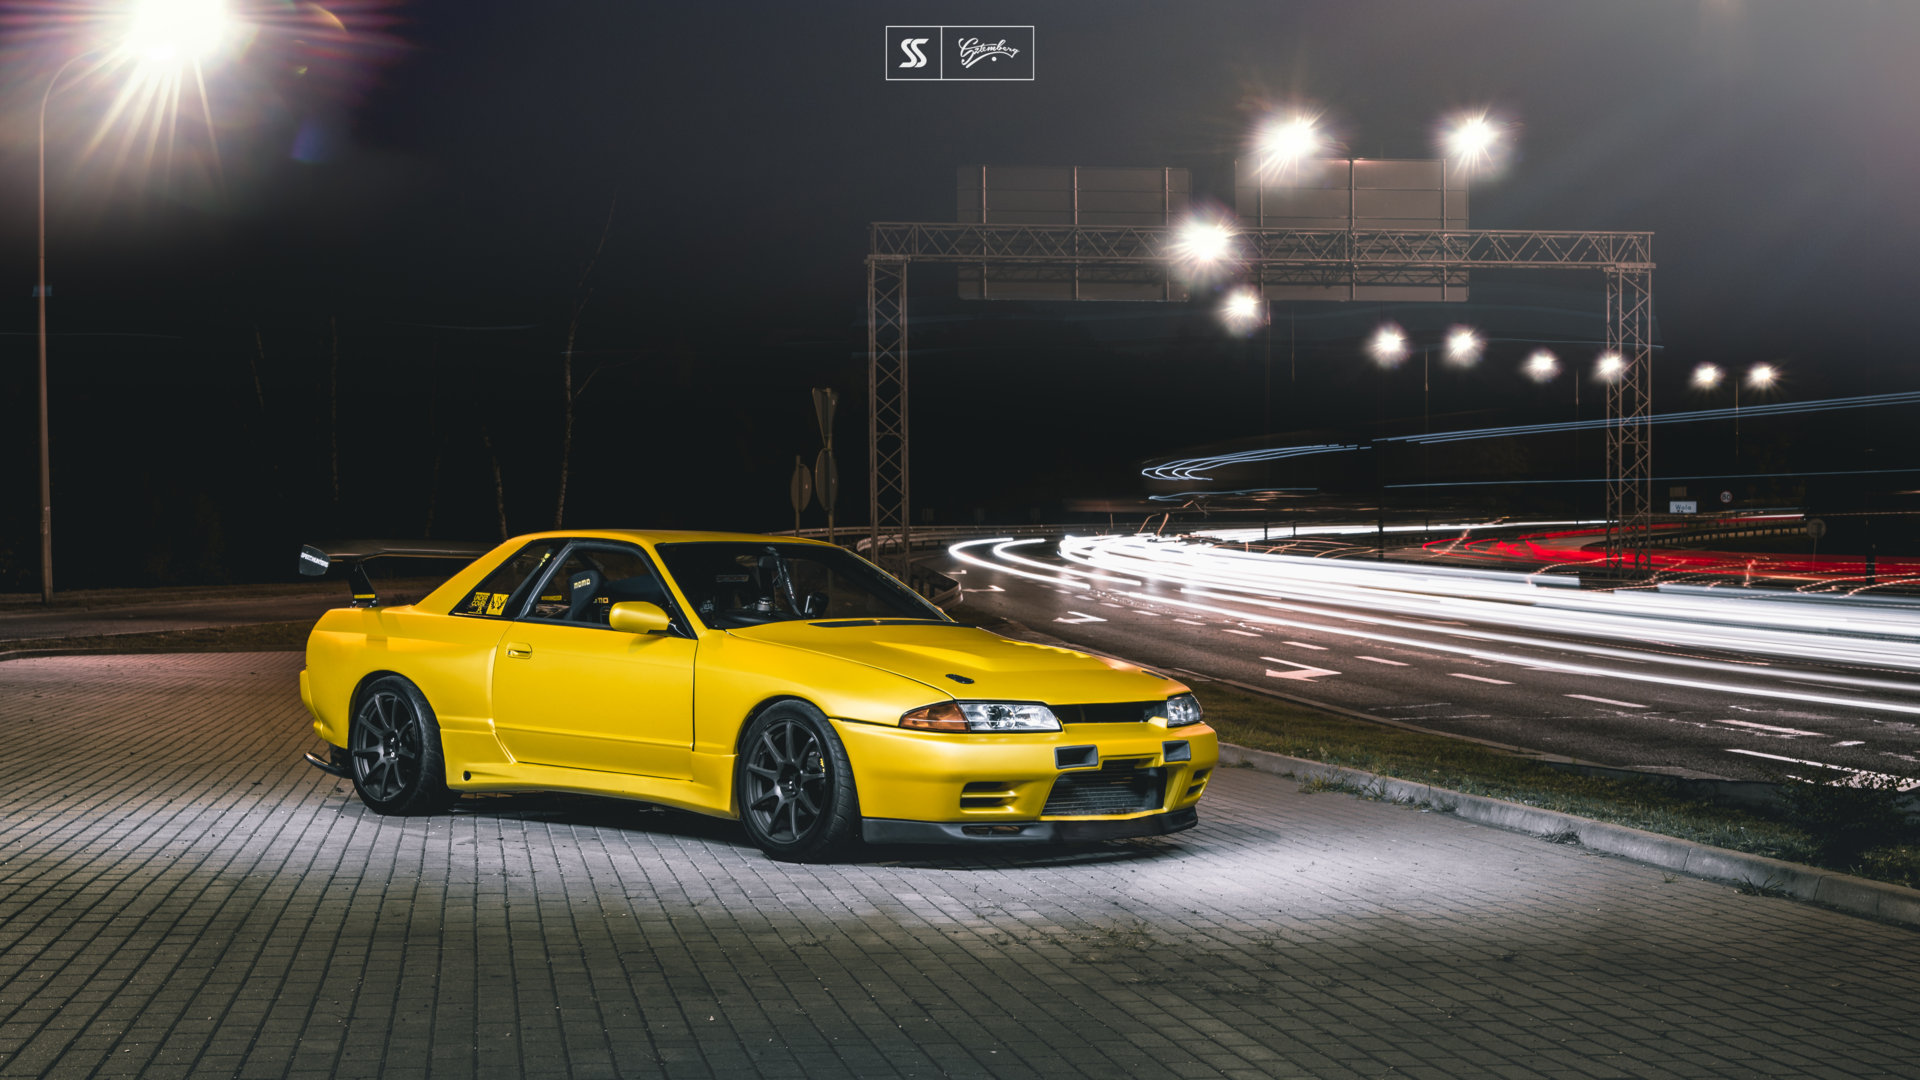 Turbo Wallpaper Car For Sale Nissan Skyline R32 400hp 1 5jz Gts Street And